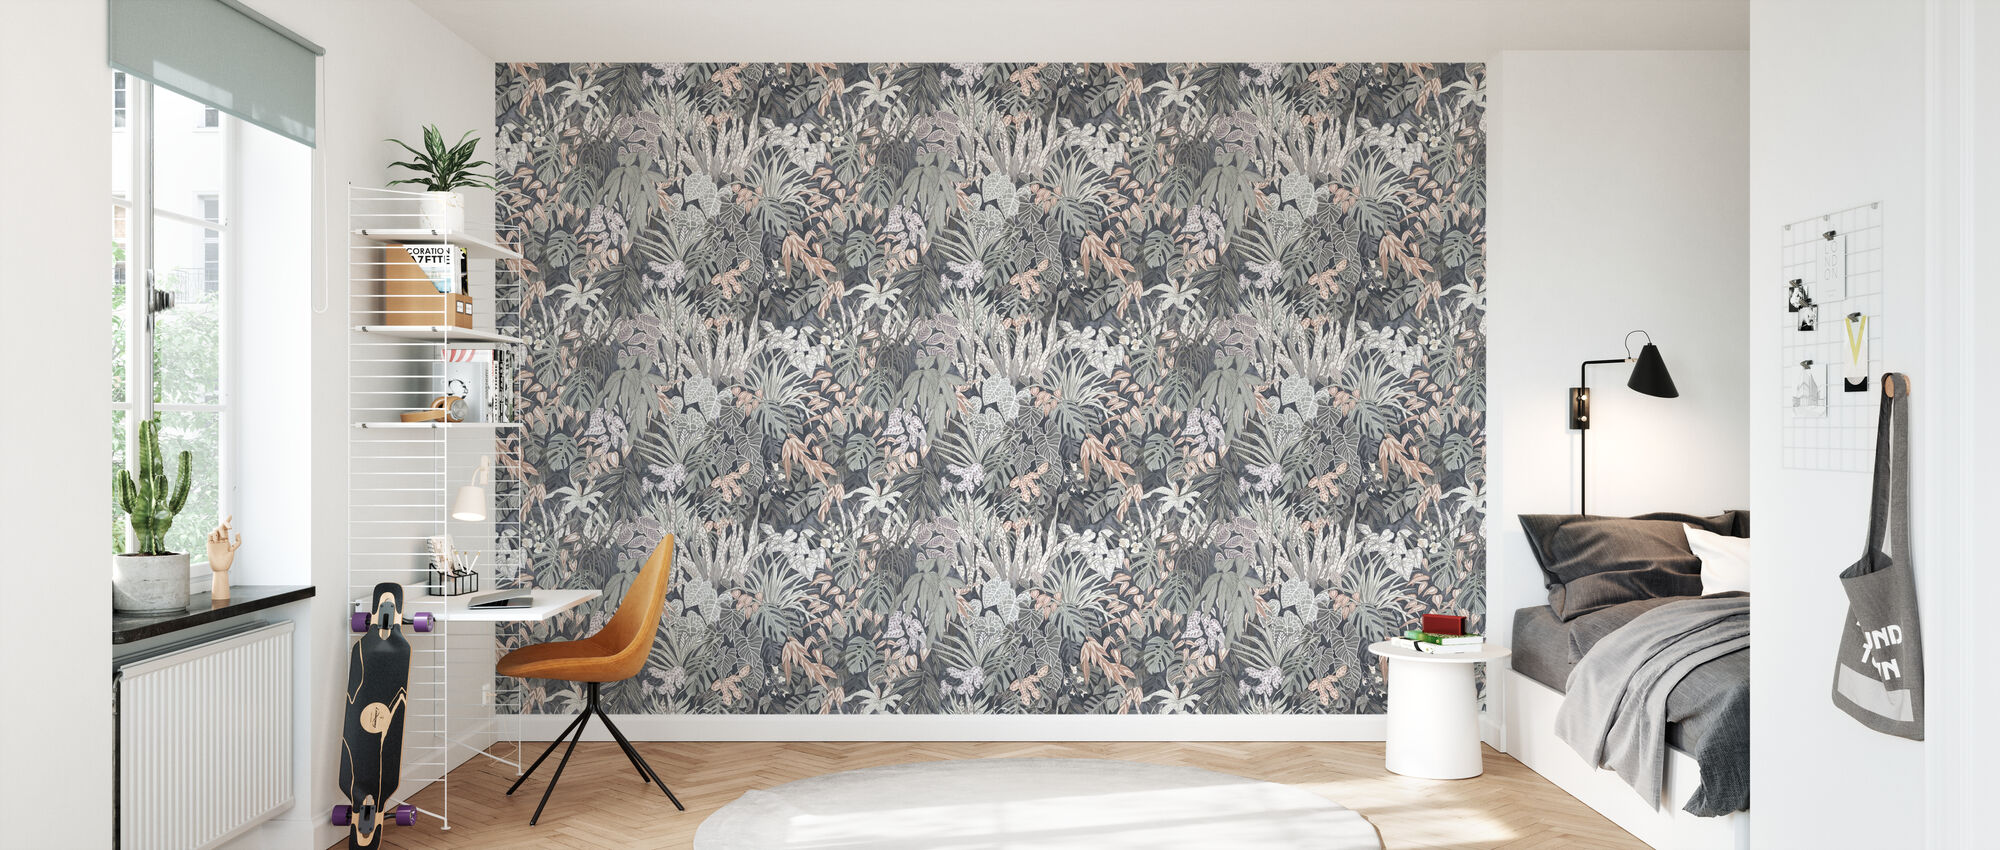 Tanglewood Forest Silver Ash - Wallpaper - Kids Room